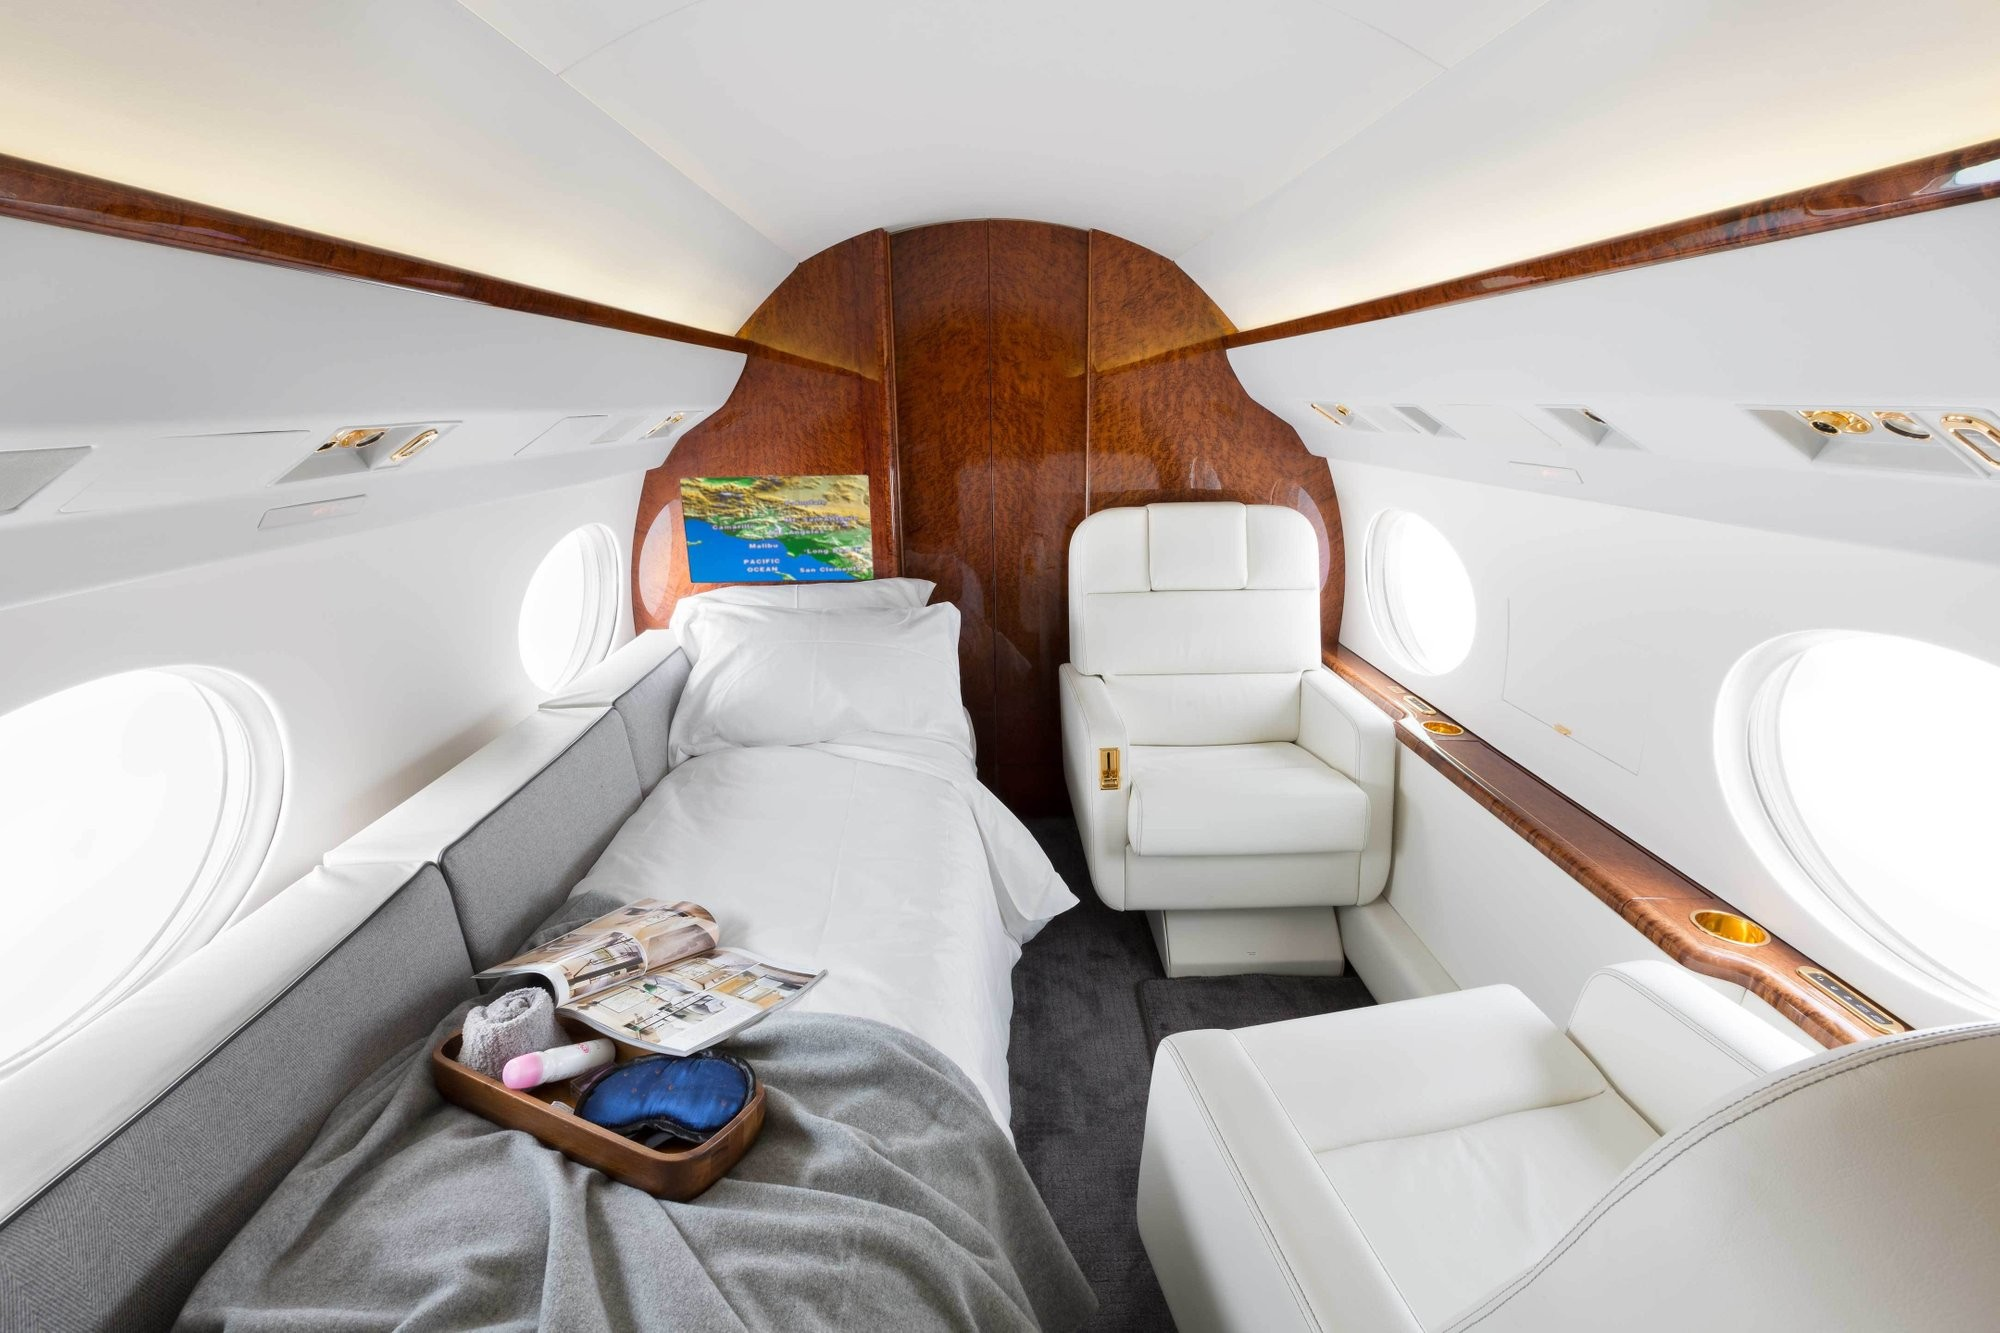 How much does it cost to charter a private jet: prices. 1992 Gulfstream IV SP, Van Nuys, CA, USA, price on request.